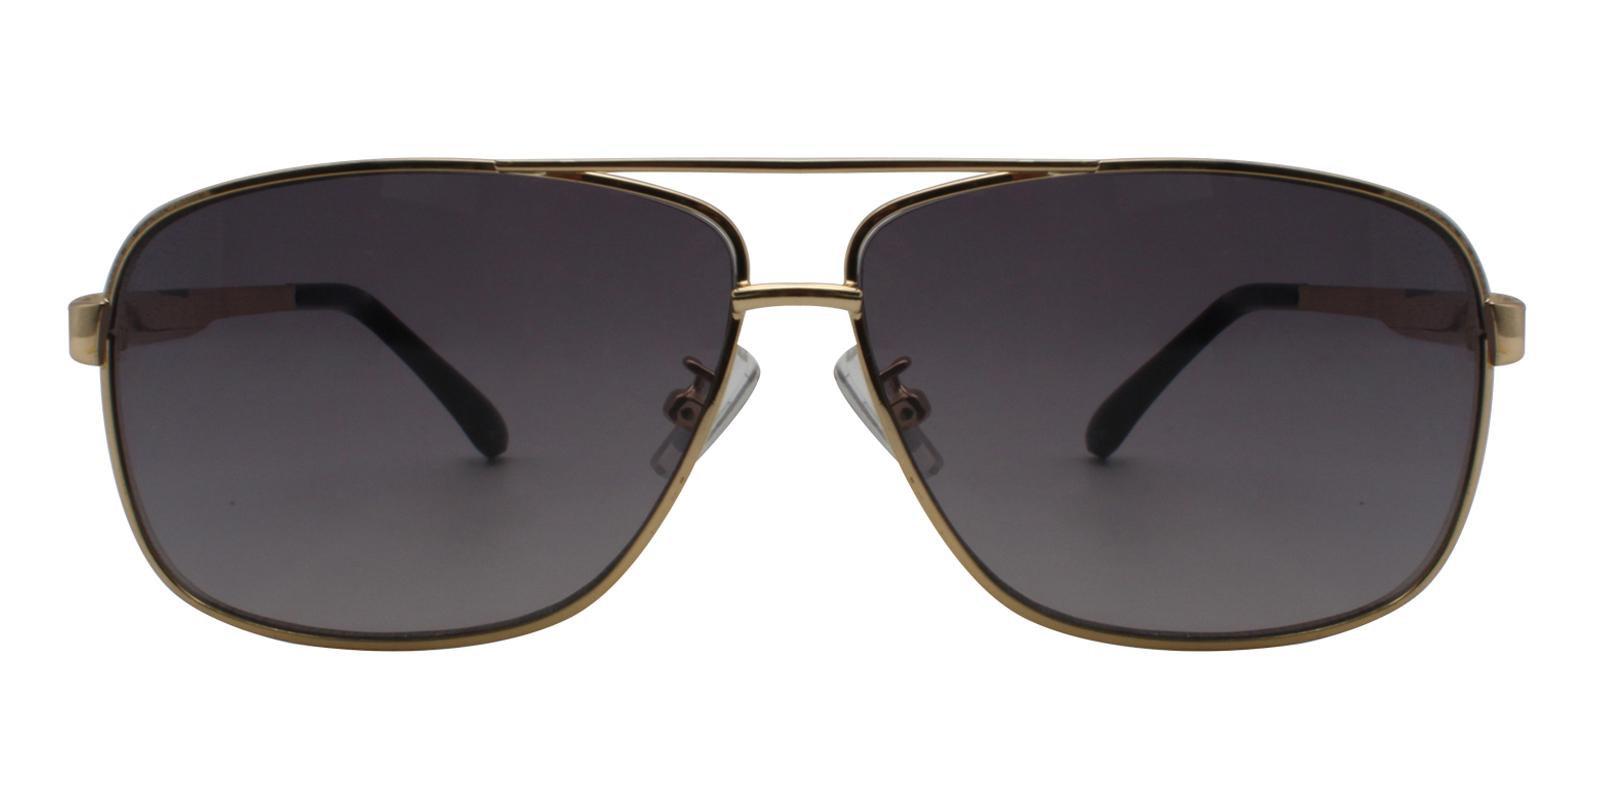 Jackson Gold Metal NosePads , Sunglasses Frames from ABBE Glasses